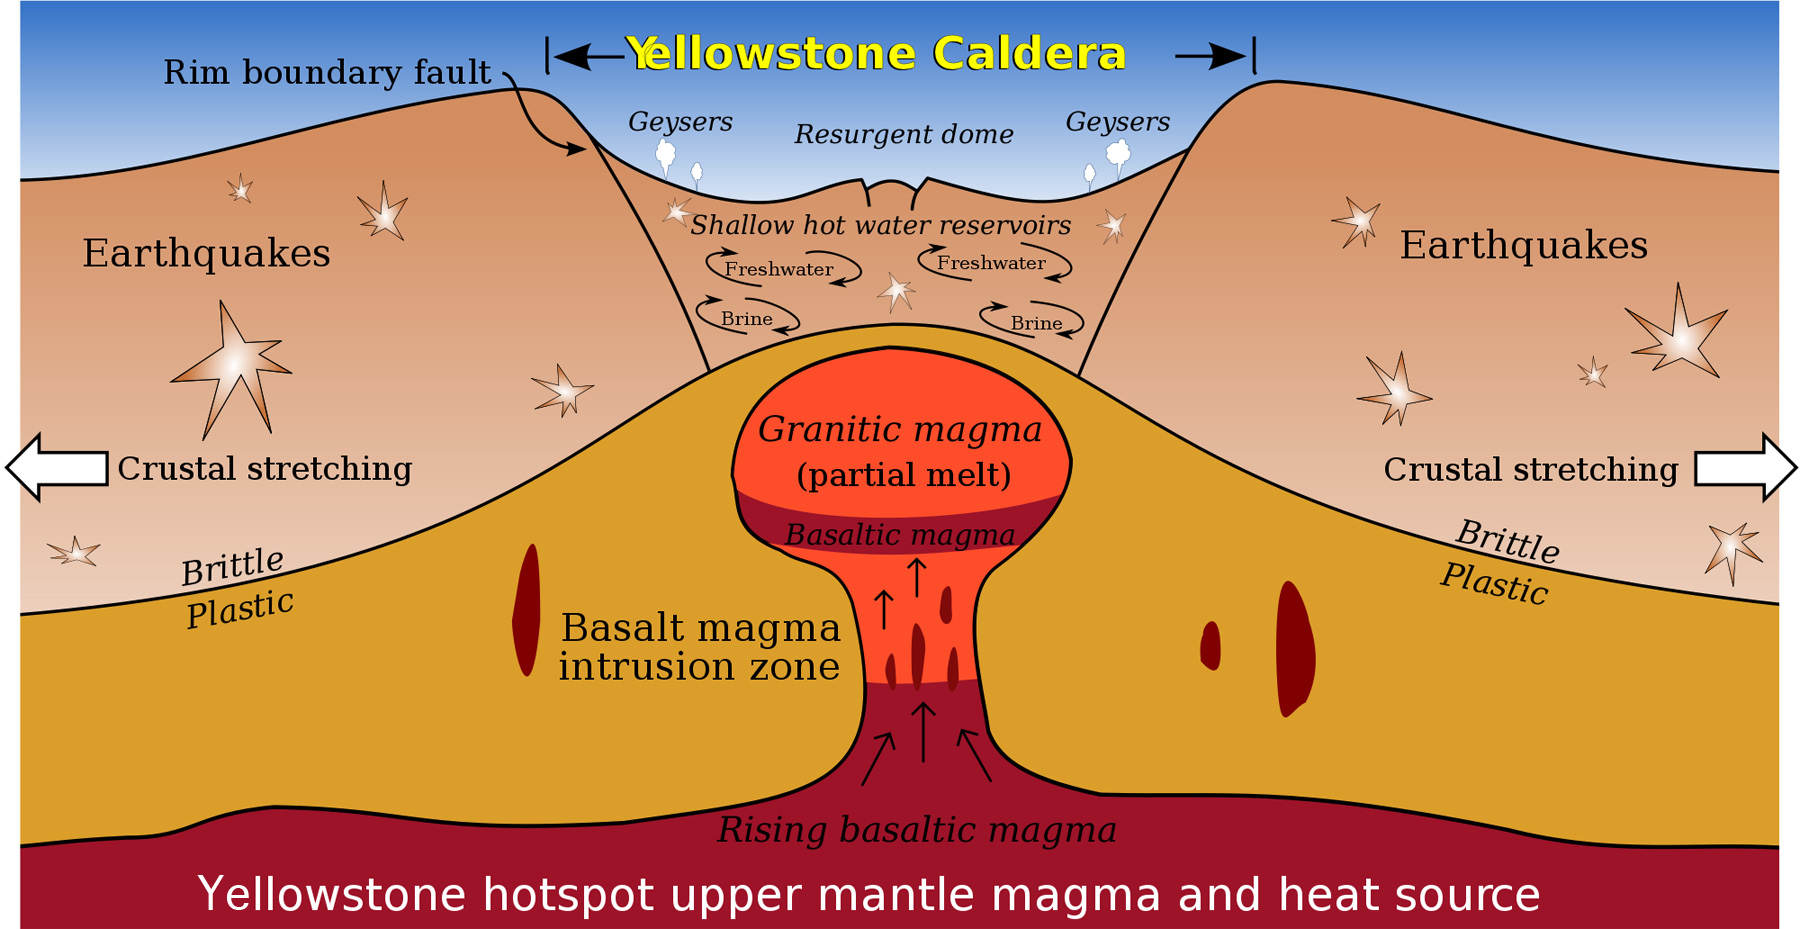 Cross-section diagram of Yellowstone caldera, showing magma, water and crustal movement